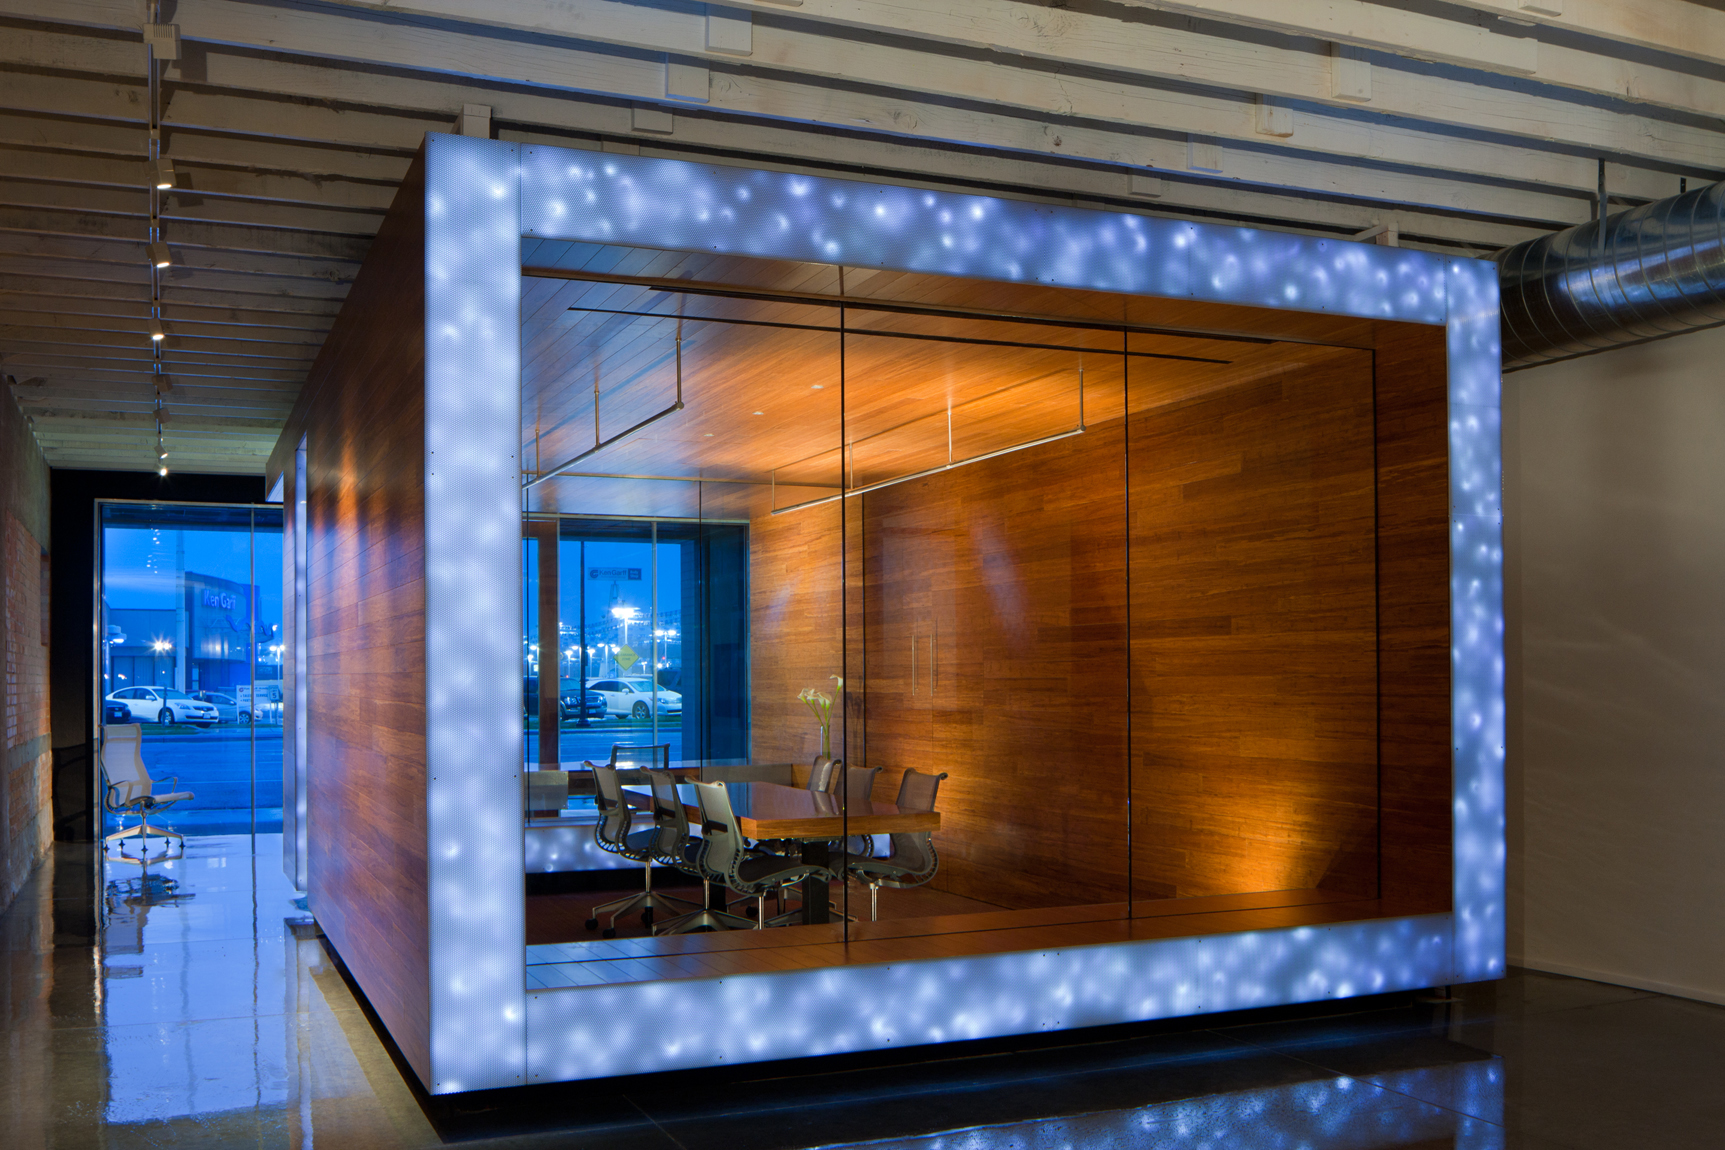 View of office conference room made of warm wood and glass with LED lights. Shiny concrete floors and blue, dusk windows.